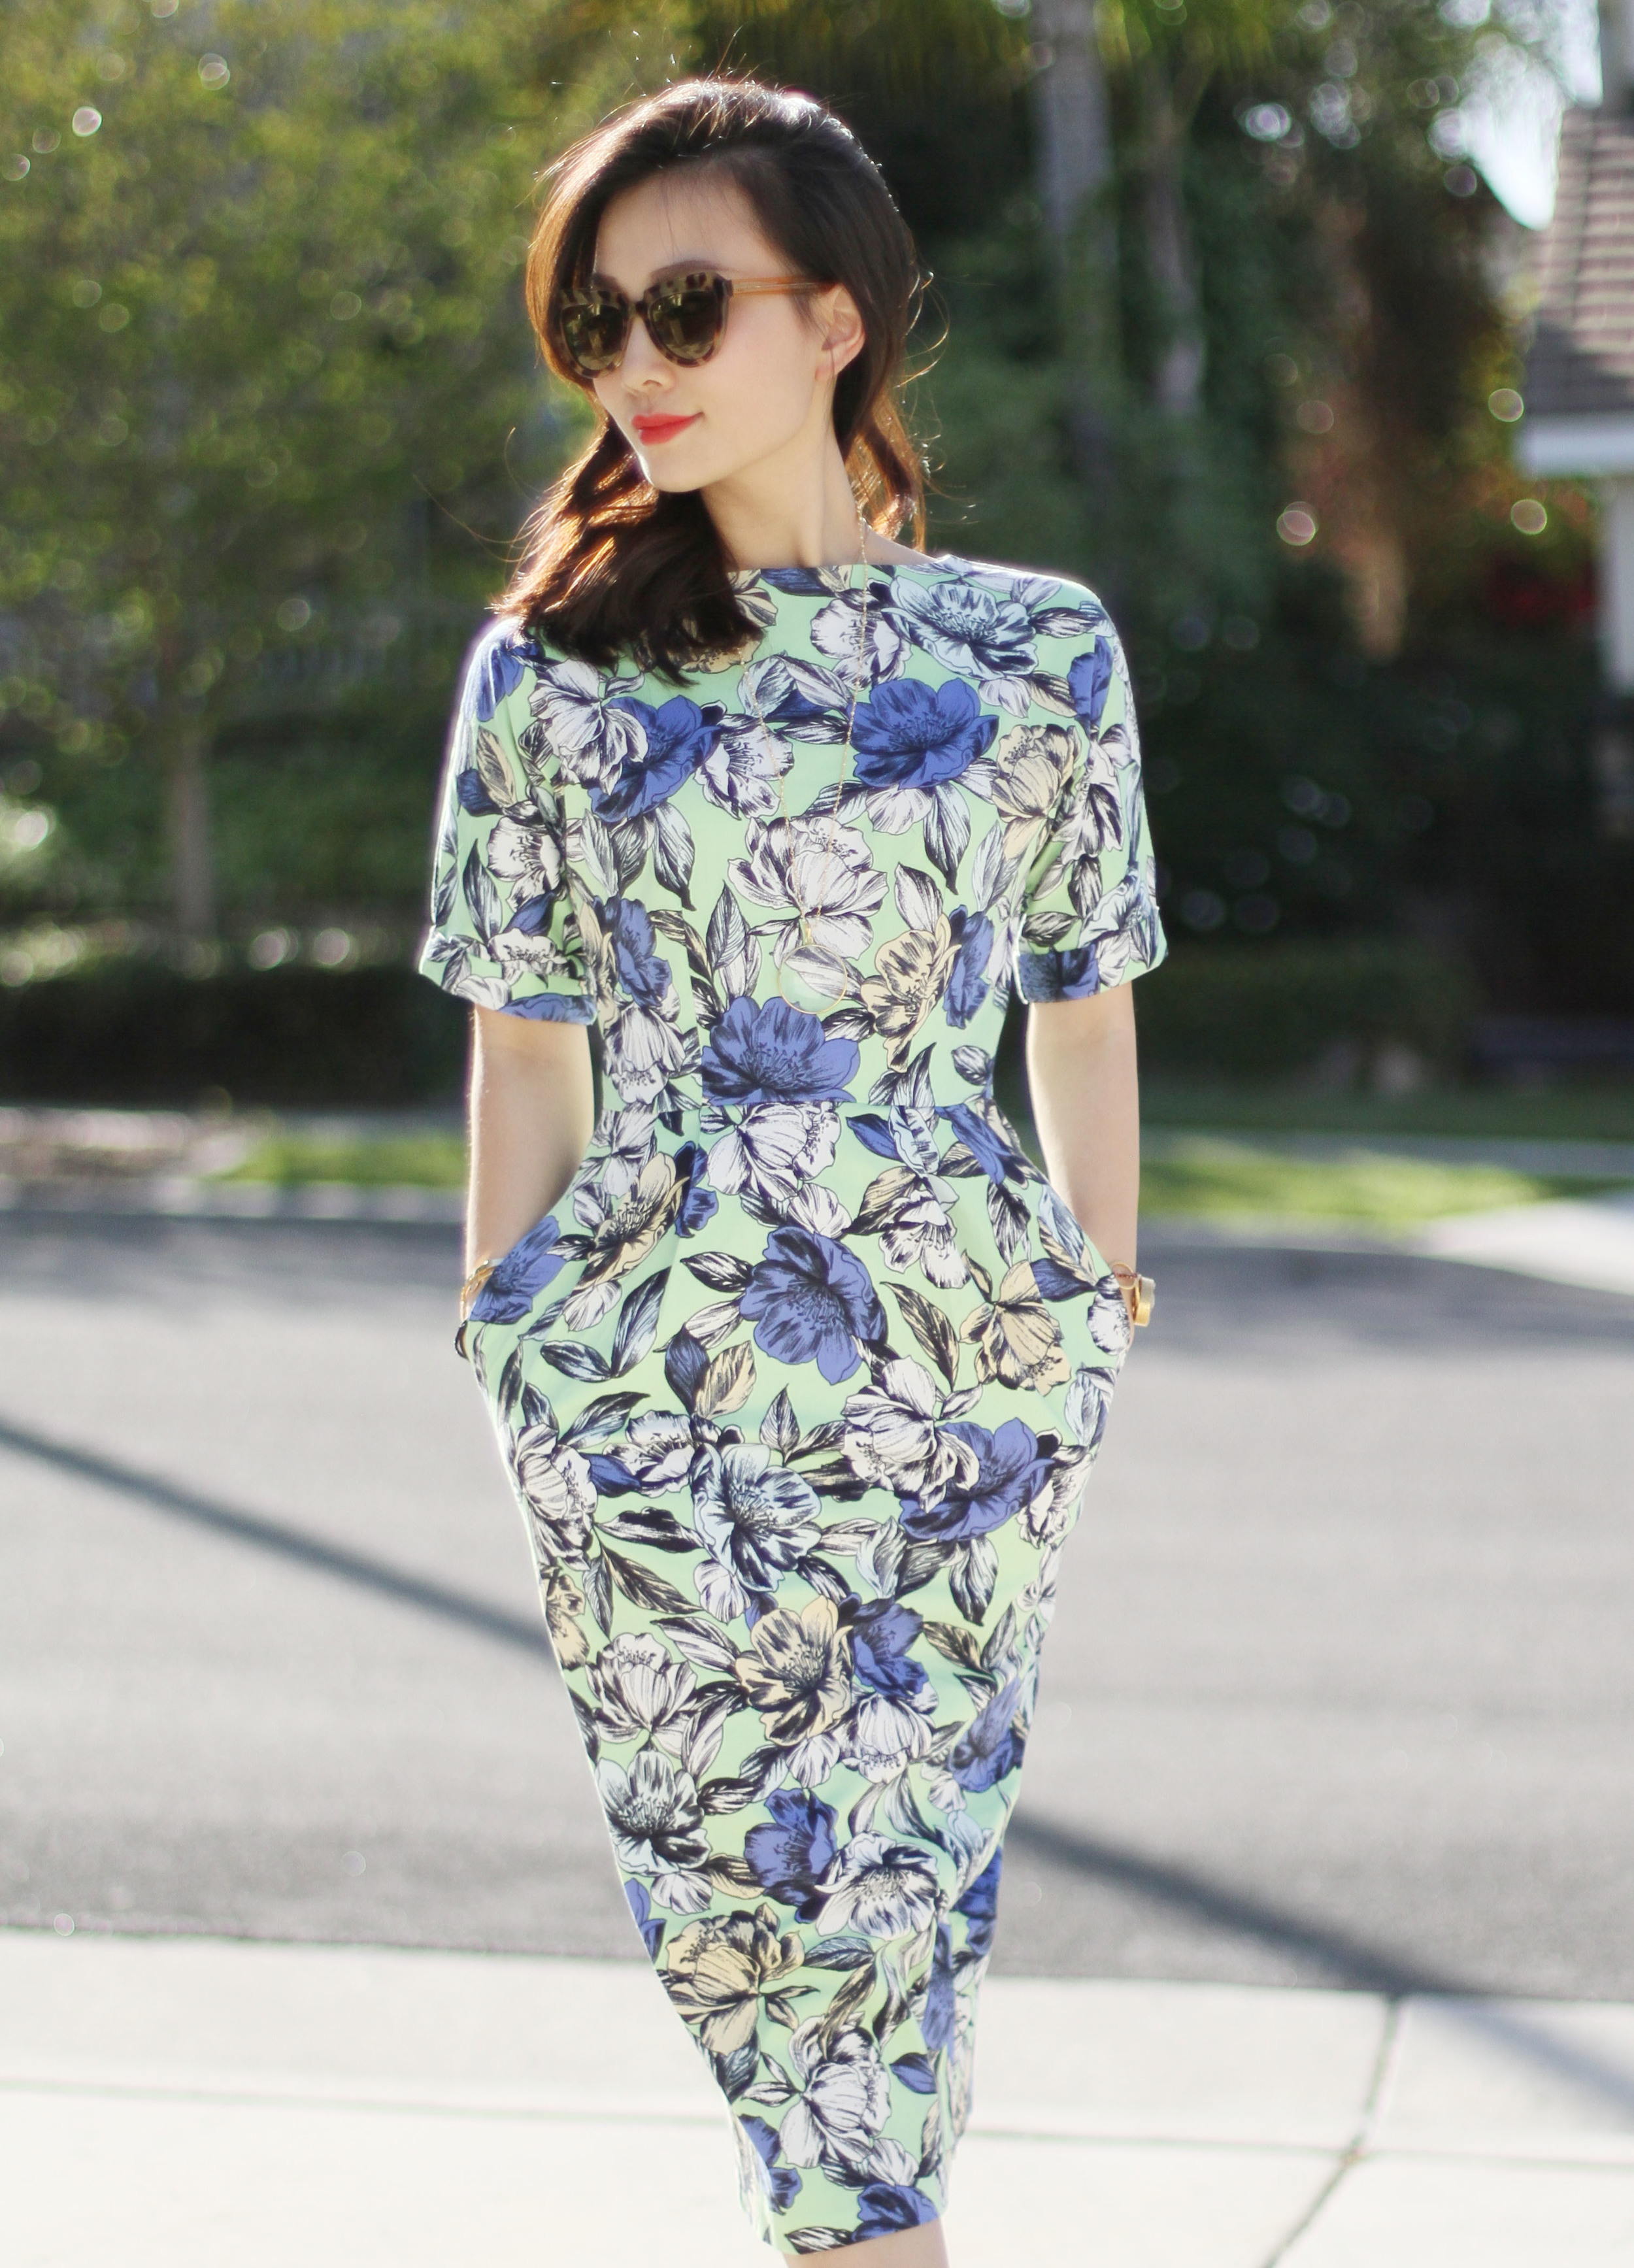 The classic definition of a  Wiggle Dress  to longtime vintage clothing sellers and shoppers is that the width of the hem of the dress is narrower than the hips. This narrowness keeps your legs close together at the knees, causing the 'Wiggle' when you walk.